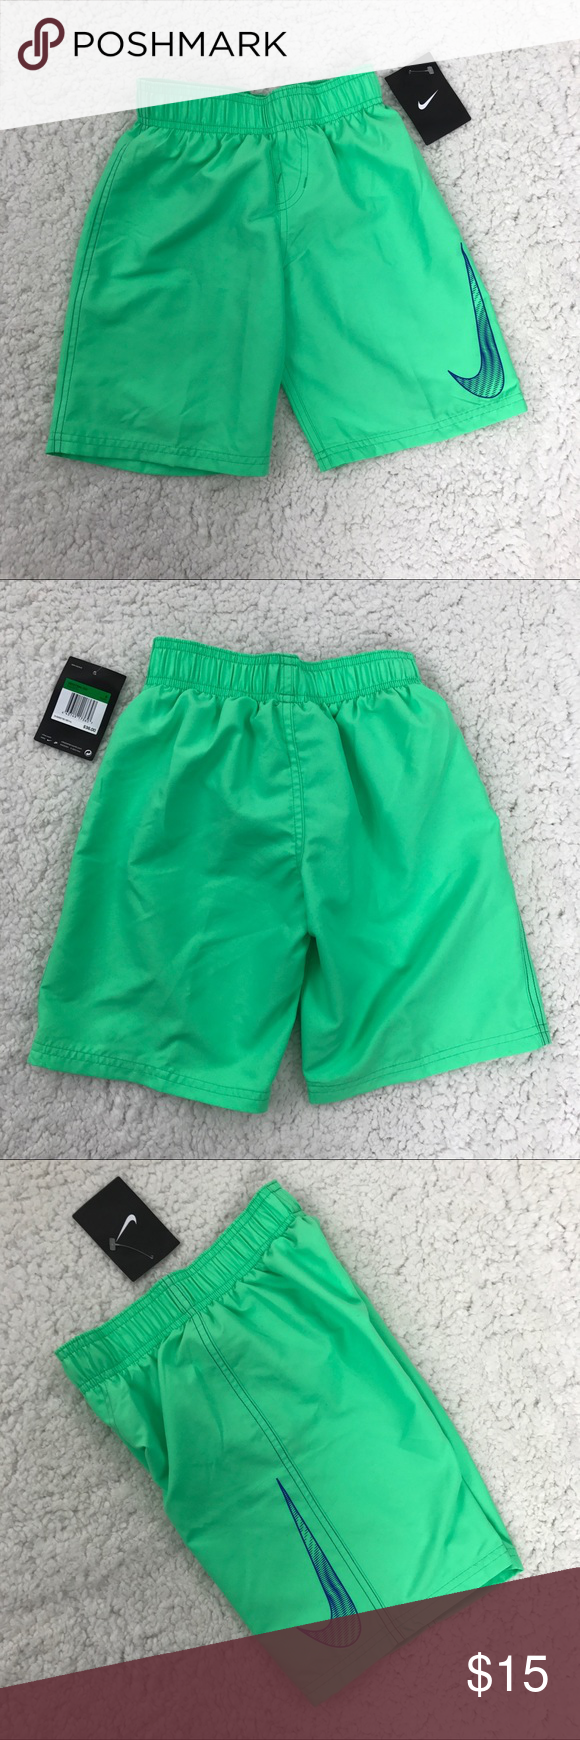 df05422f9b Nike Boys Swim Trunks Board Shorts Lime Neon Green Brand new with tags -  SKU NWT01 Please see photos for detail. Please send me a message if you  have any ...